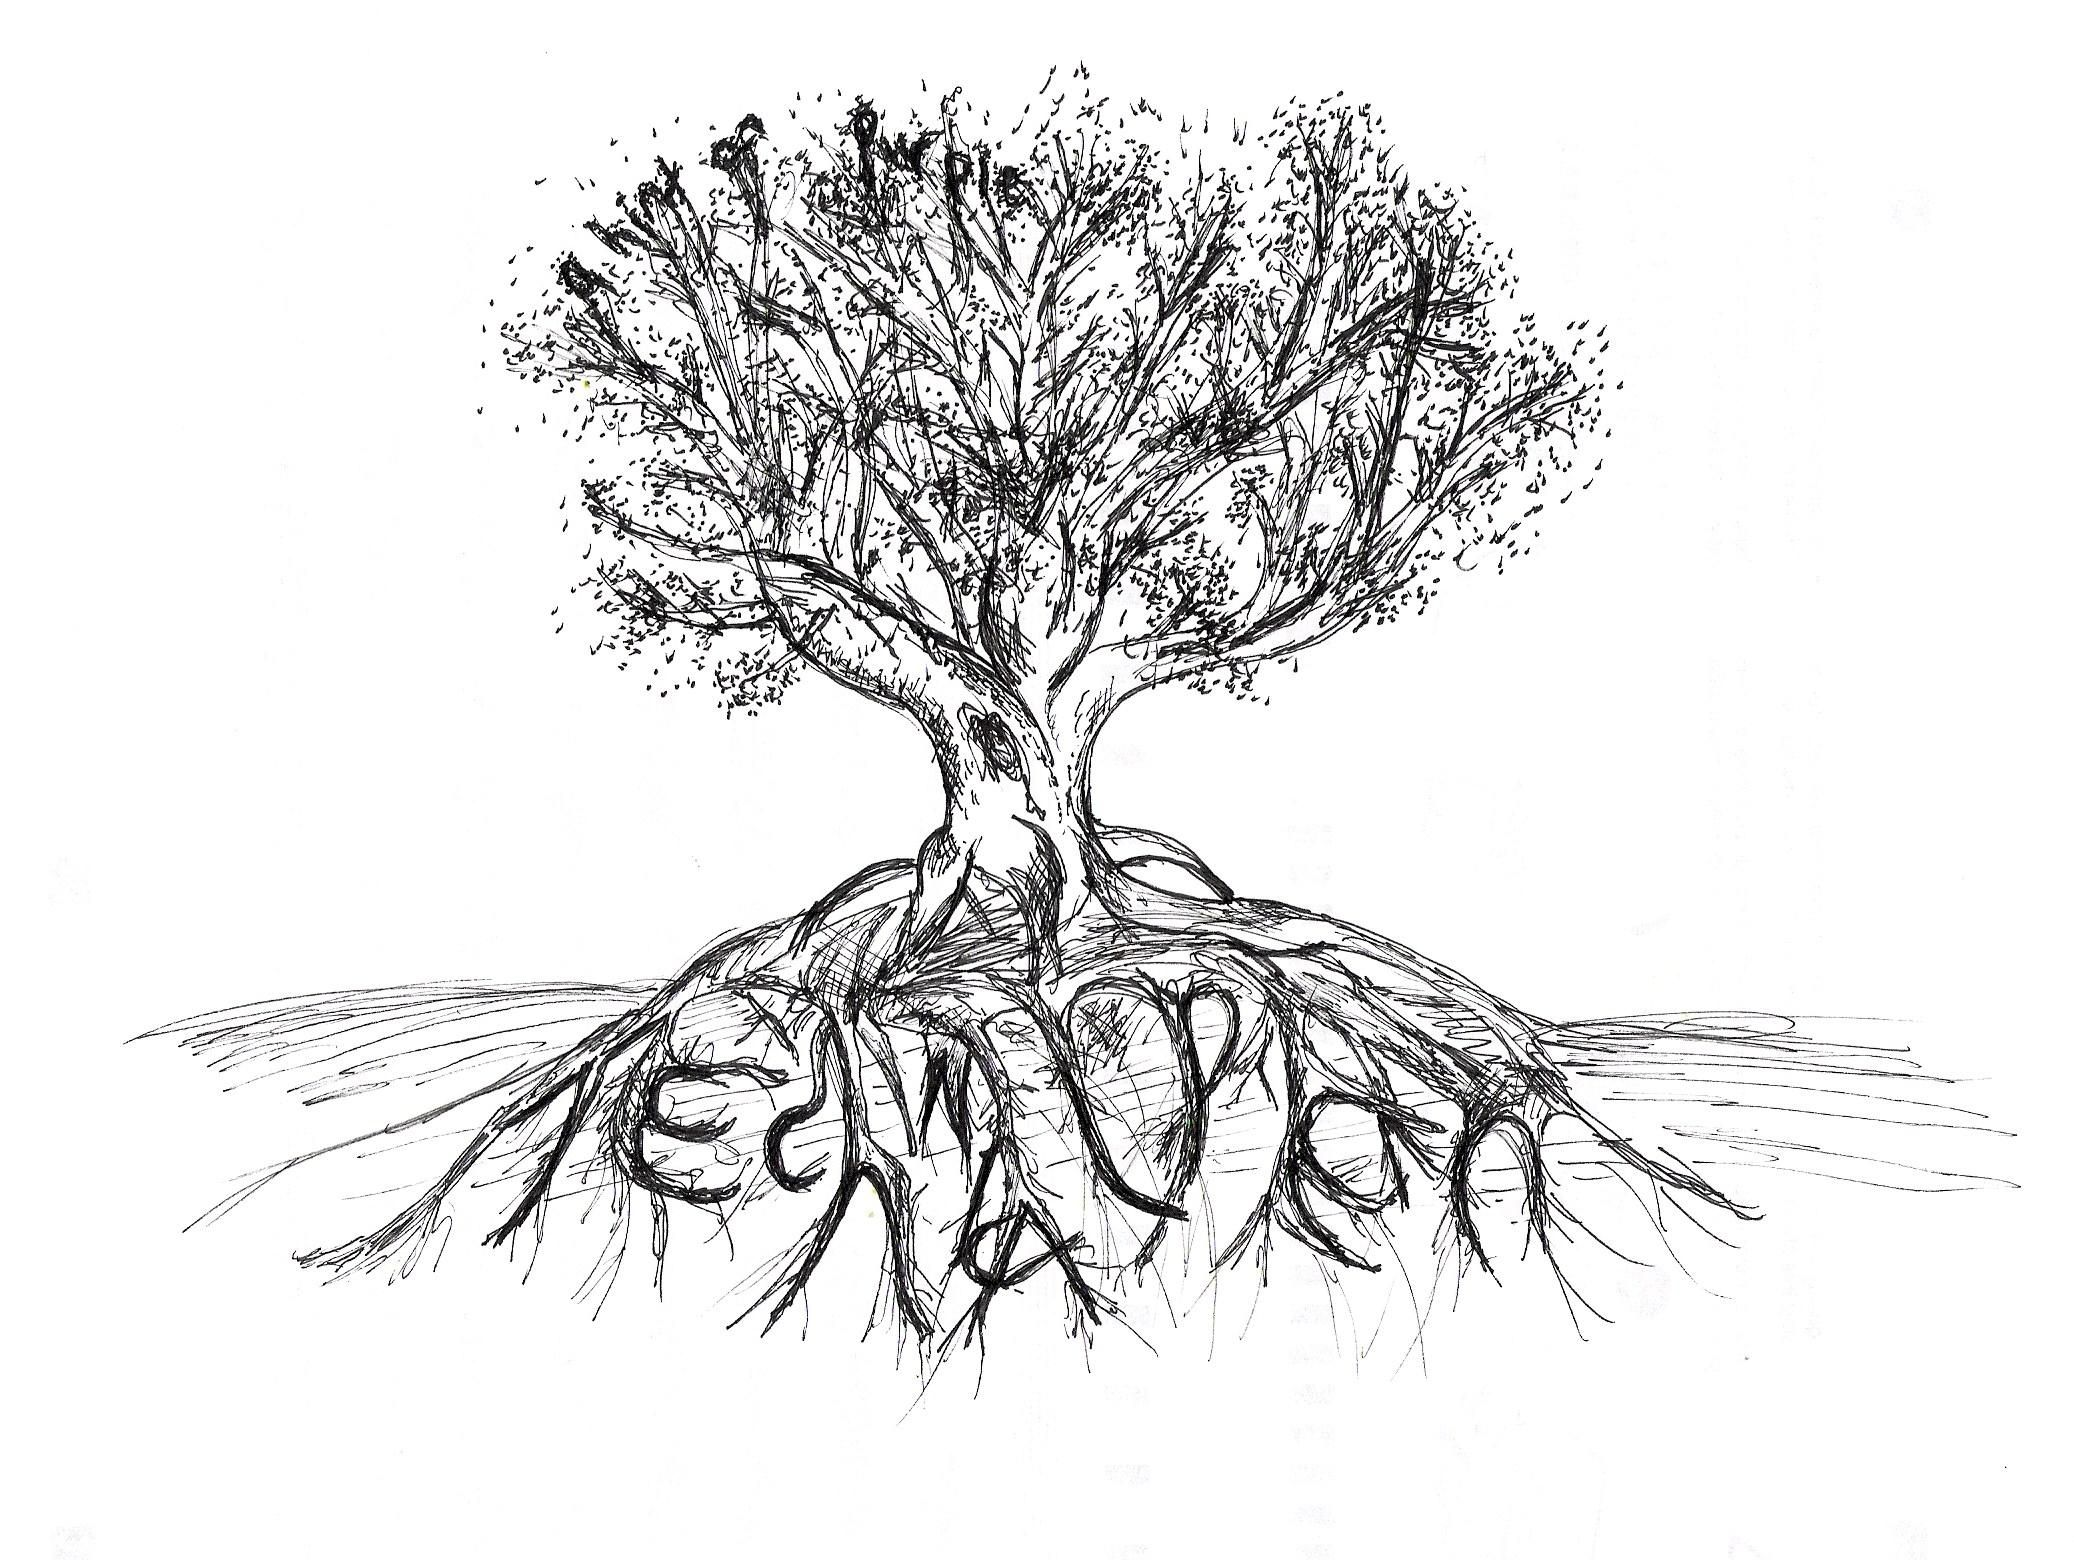 Tree With Roots Edit By Ahintofpurple D4ajx43 Roots Drawing Ink Illustrations Tree Images